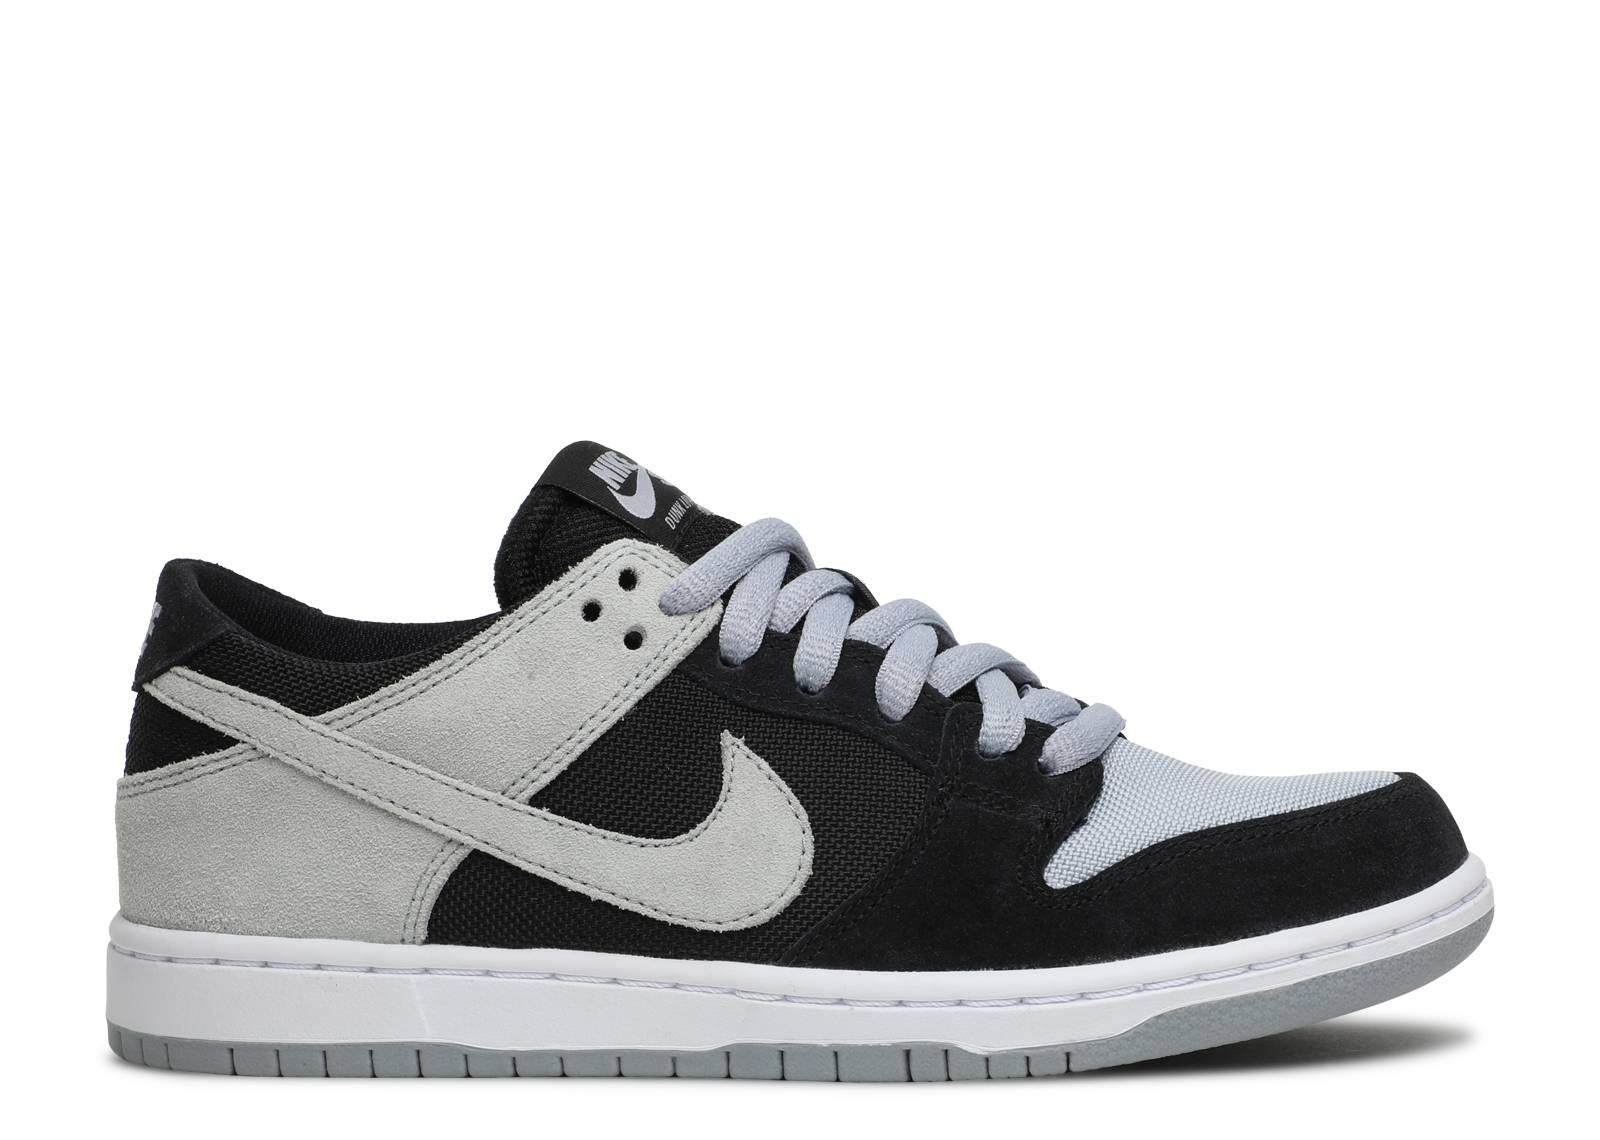 reputable site 47da6 54521 nike. nike sb zoom dunk low pro